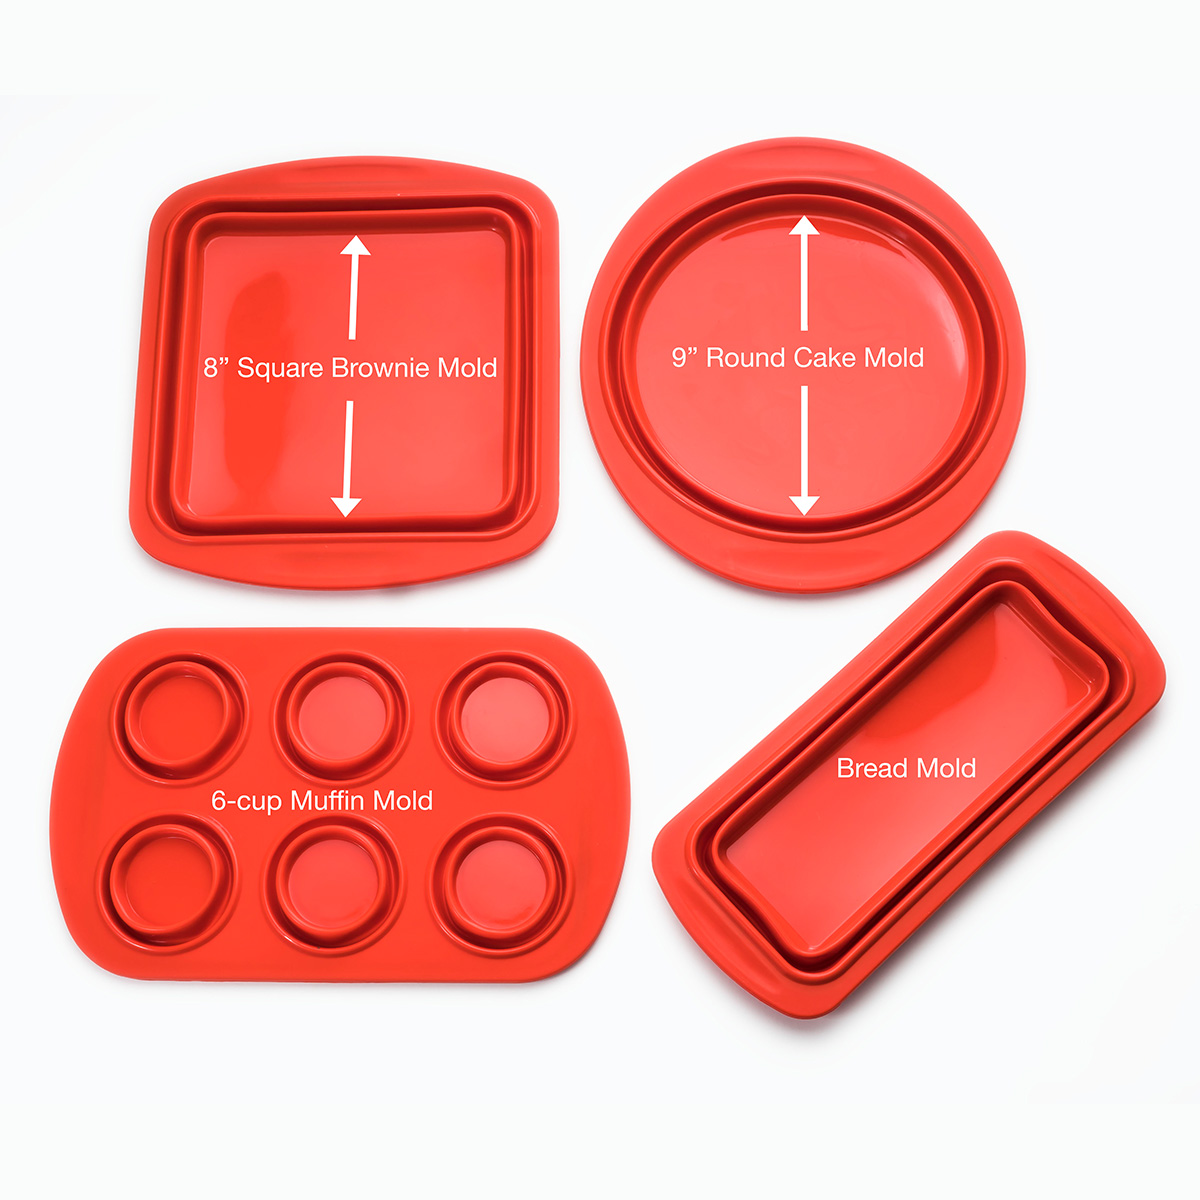 Cook-039-s-Companion-4-Piece-Collapsible-Silicone-Bakeware-Set thumbnail 11